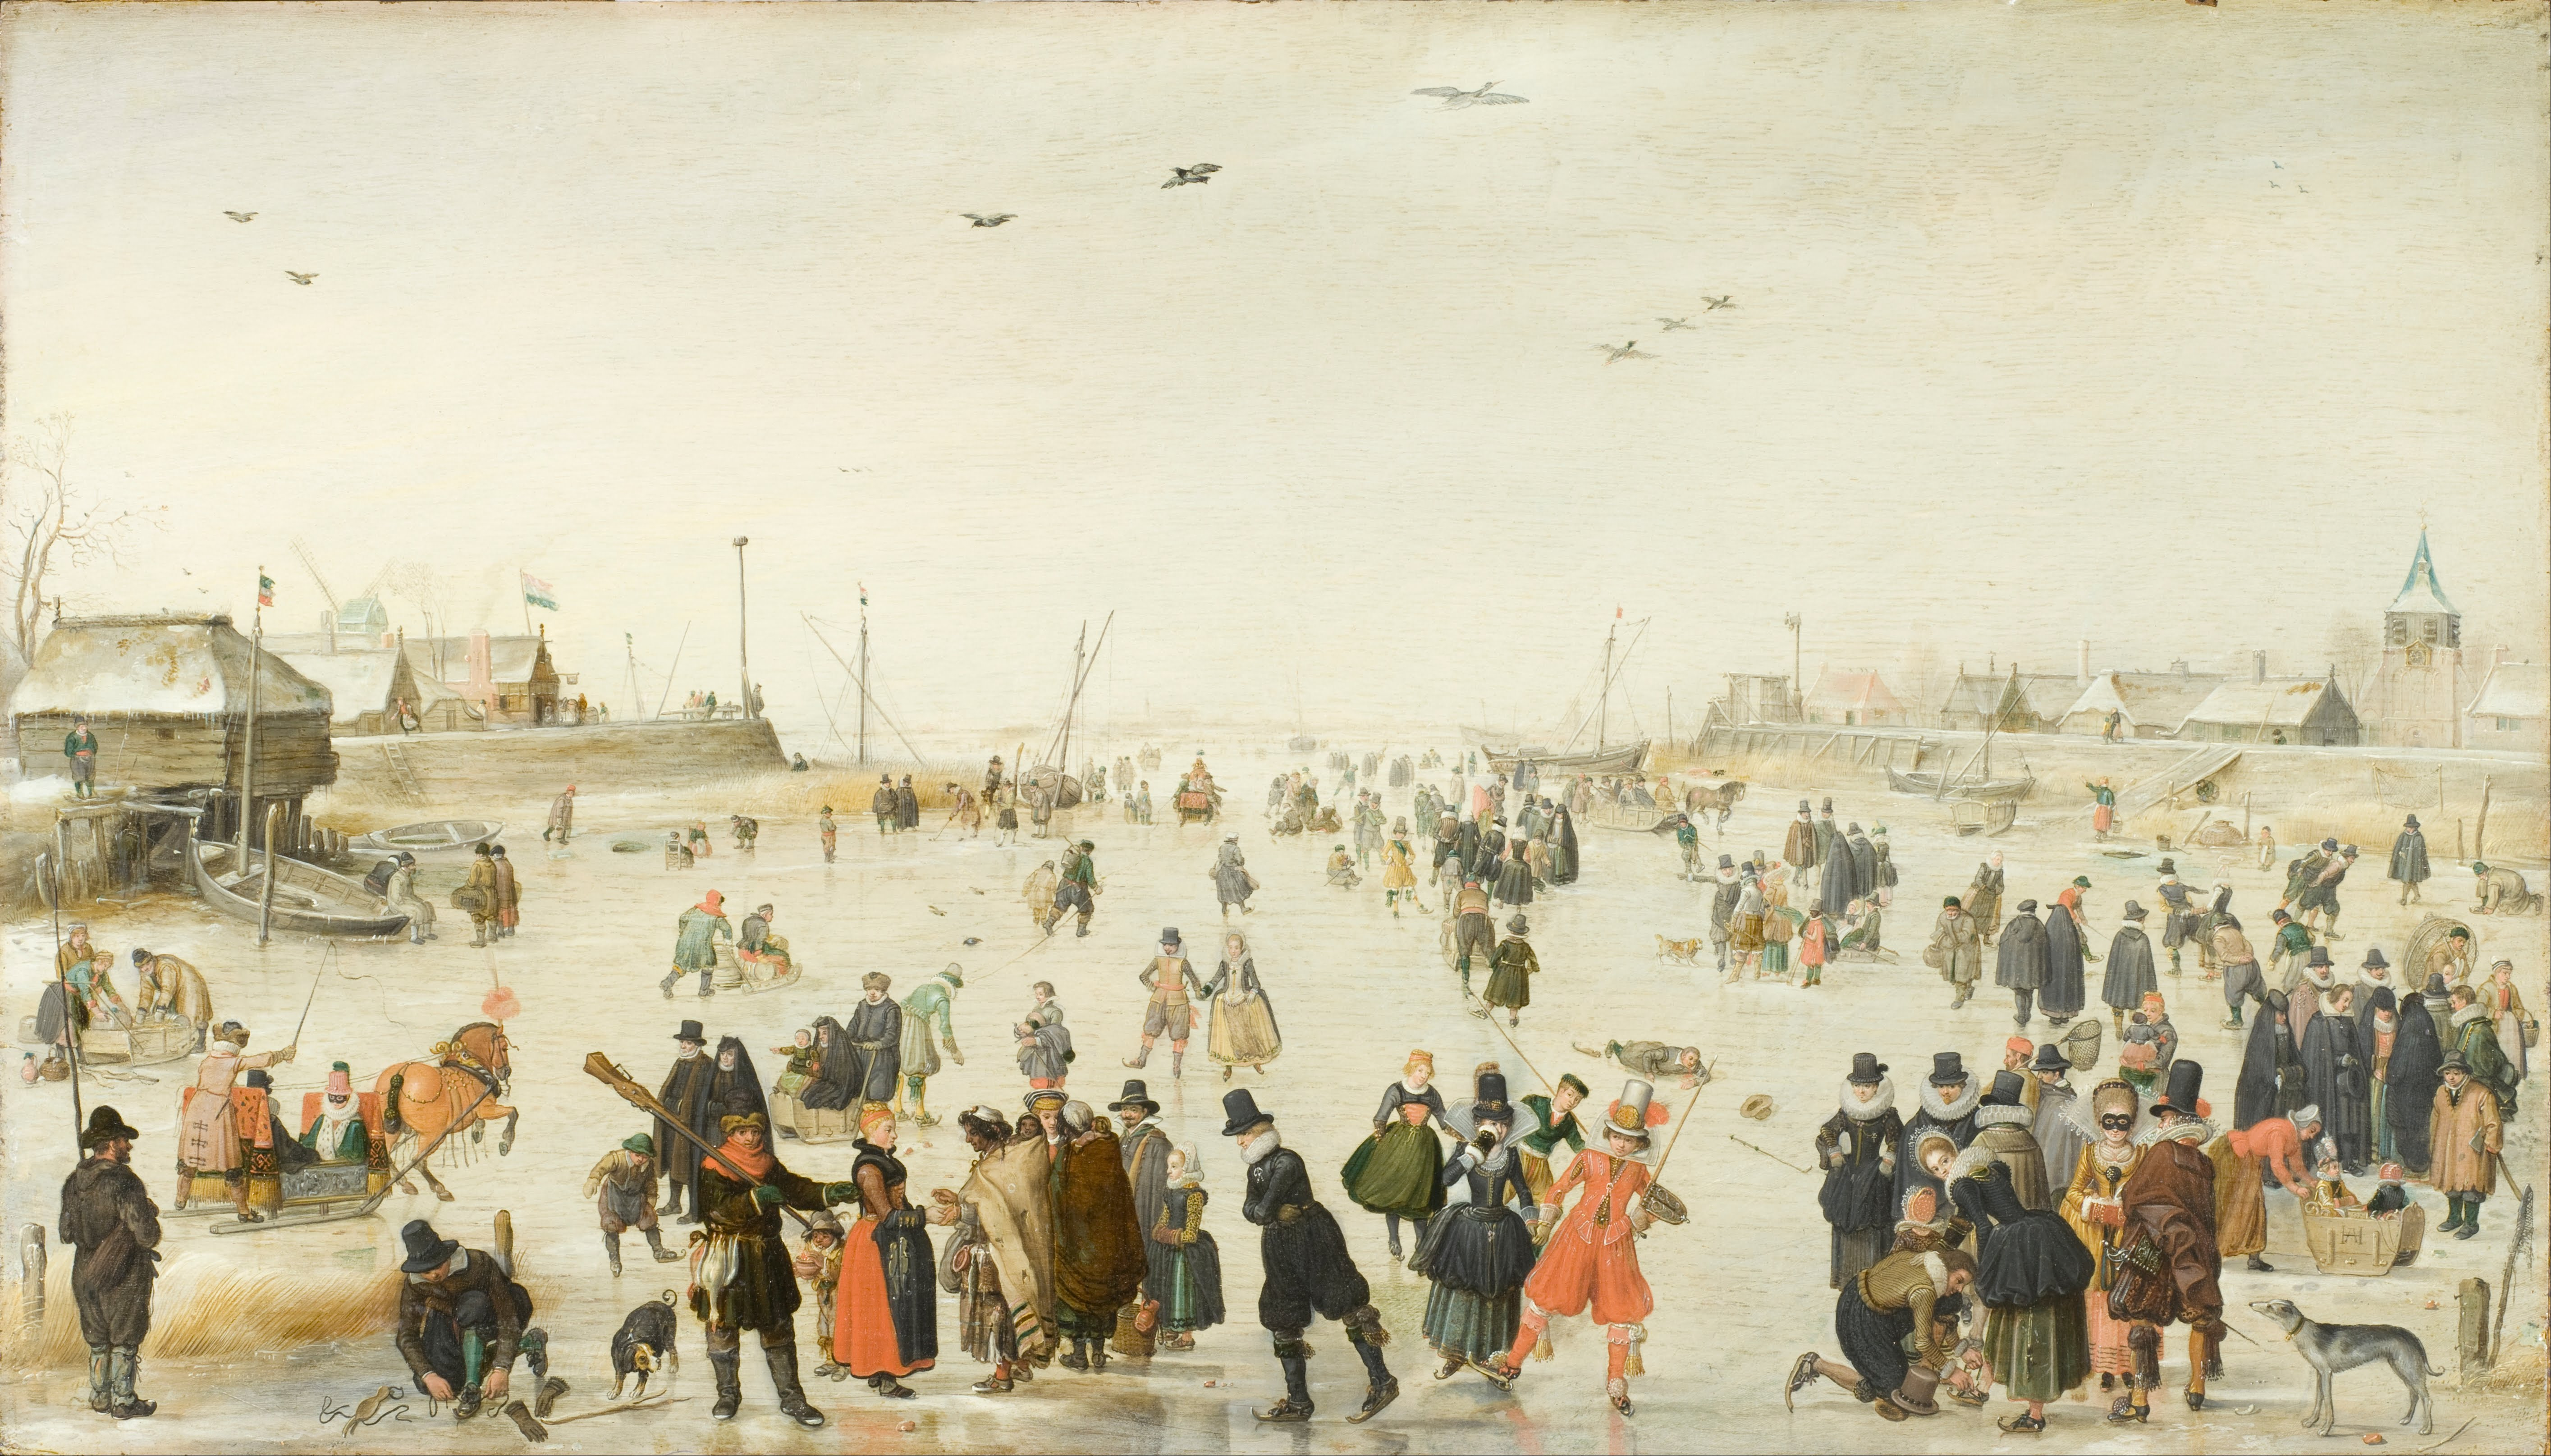 Hendrick_Avercamp_-_Winter_Scene_on_a_Frozen_Canal_-_Google_Art_Project